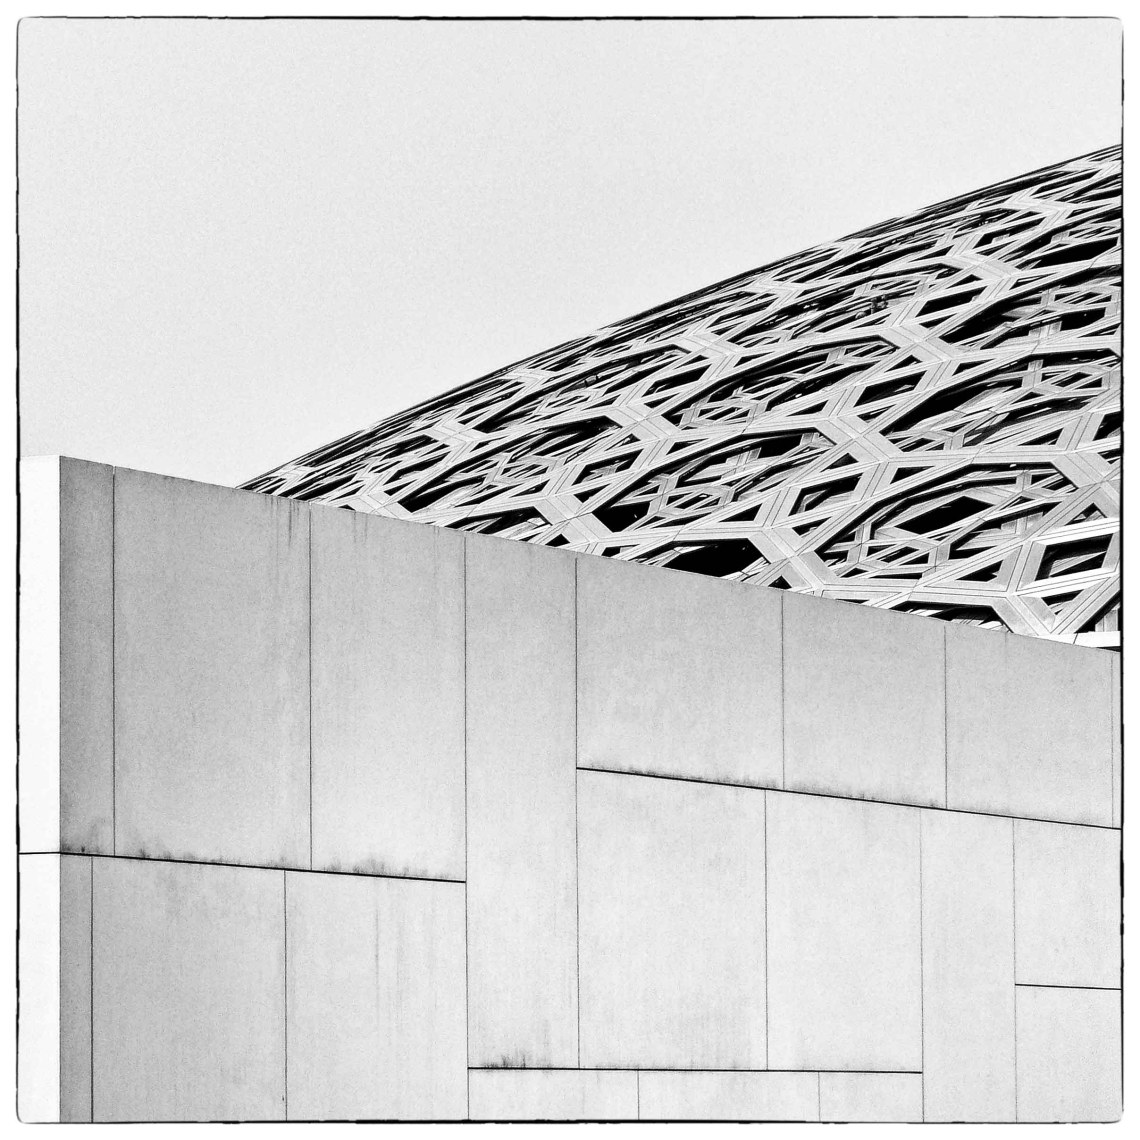 Black and white photo of white building